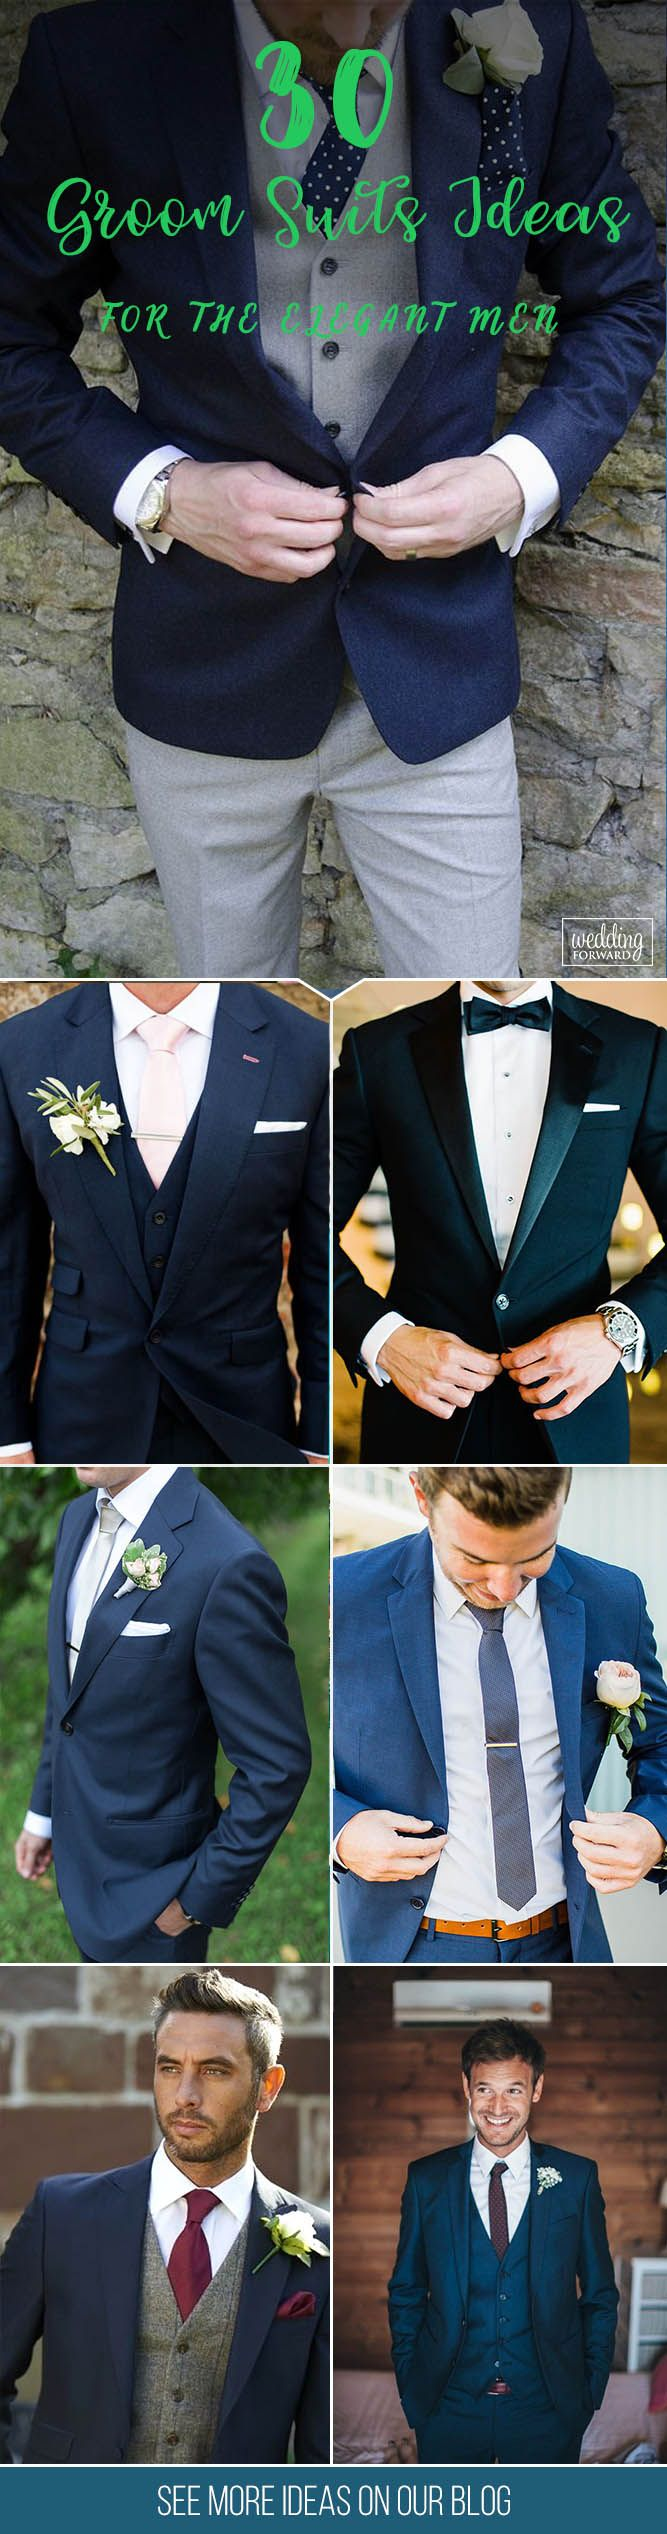 30 The Most Popular Groom Suits ❤ The choice of groom suits becomes one of the most important events. The perfect suit well fits a groom and suits him, reflects his personality. See more:    http://www.weddingforward.com/groom-suits/ ‎#groom #groomsman